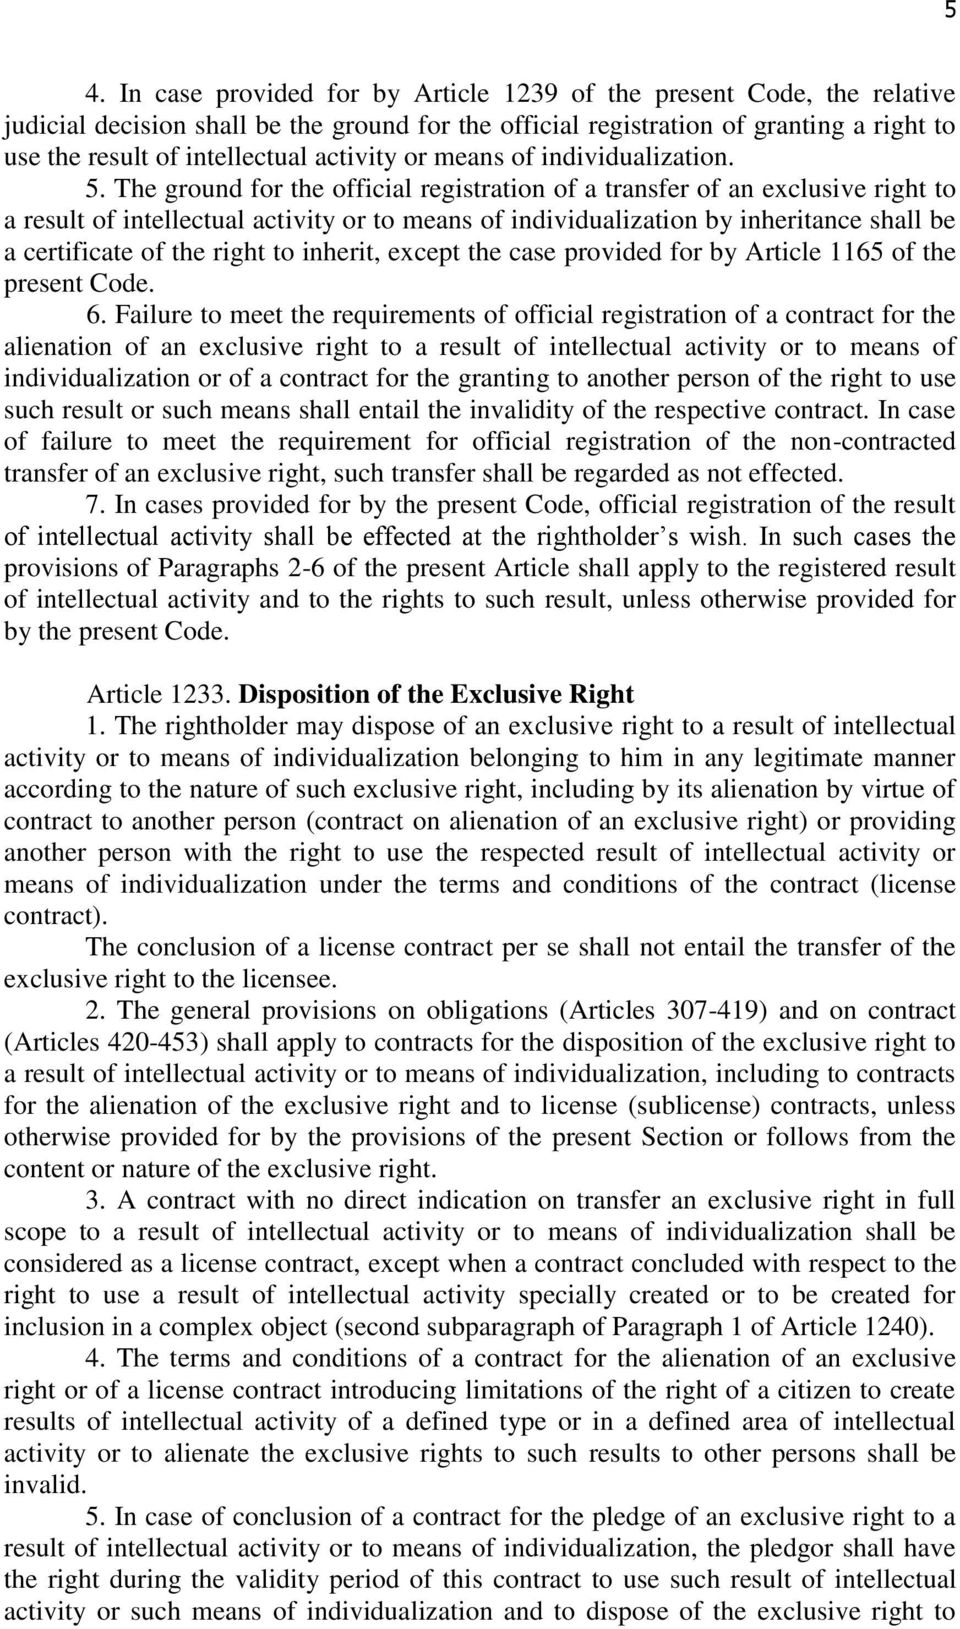 The ground for the official registration of a transfer of an exclusive right to a result of intellectual activity or to means of individualization by inheritance shall be a certificate of the right